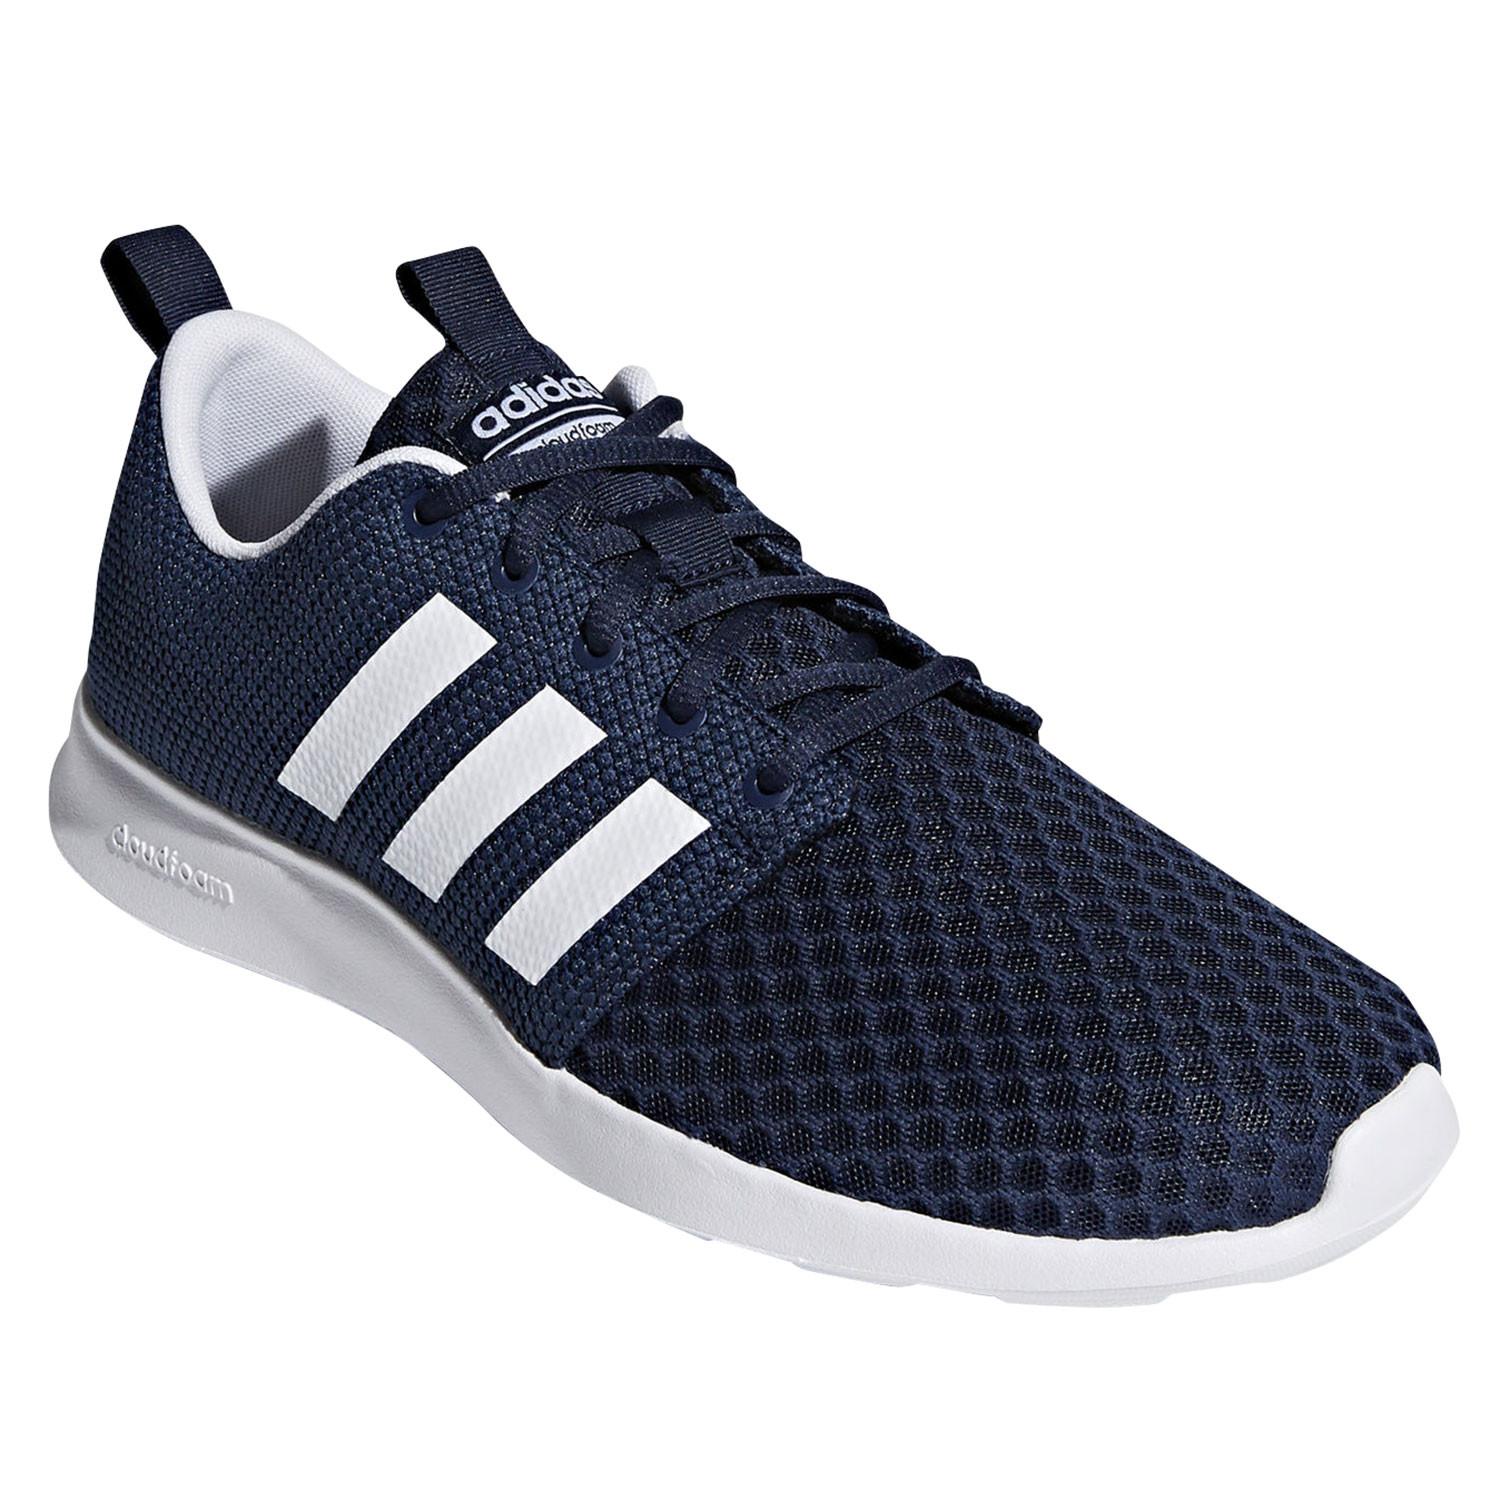 Pas Racer Swift Cf Cher Adidas Basses Homme Bleu Baskets Chaussure vYp1y1AZq